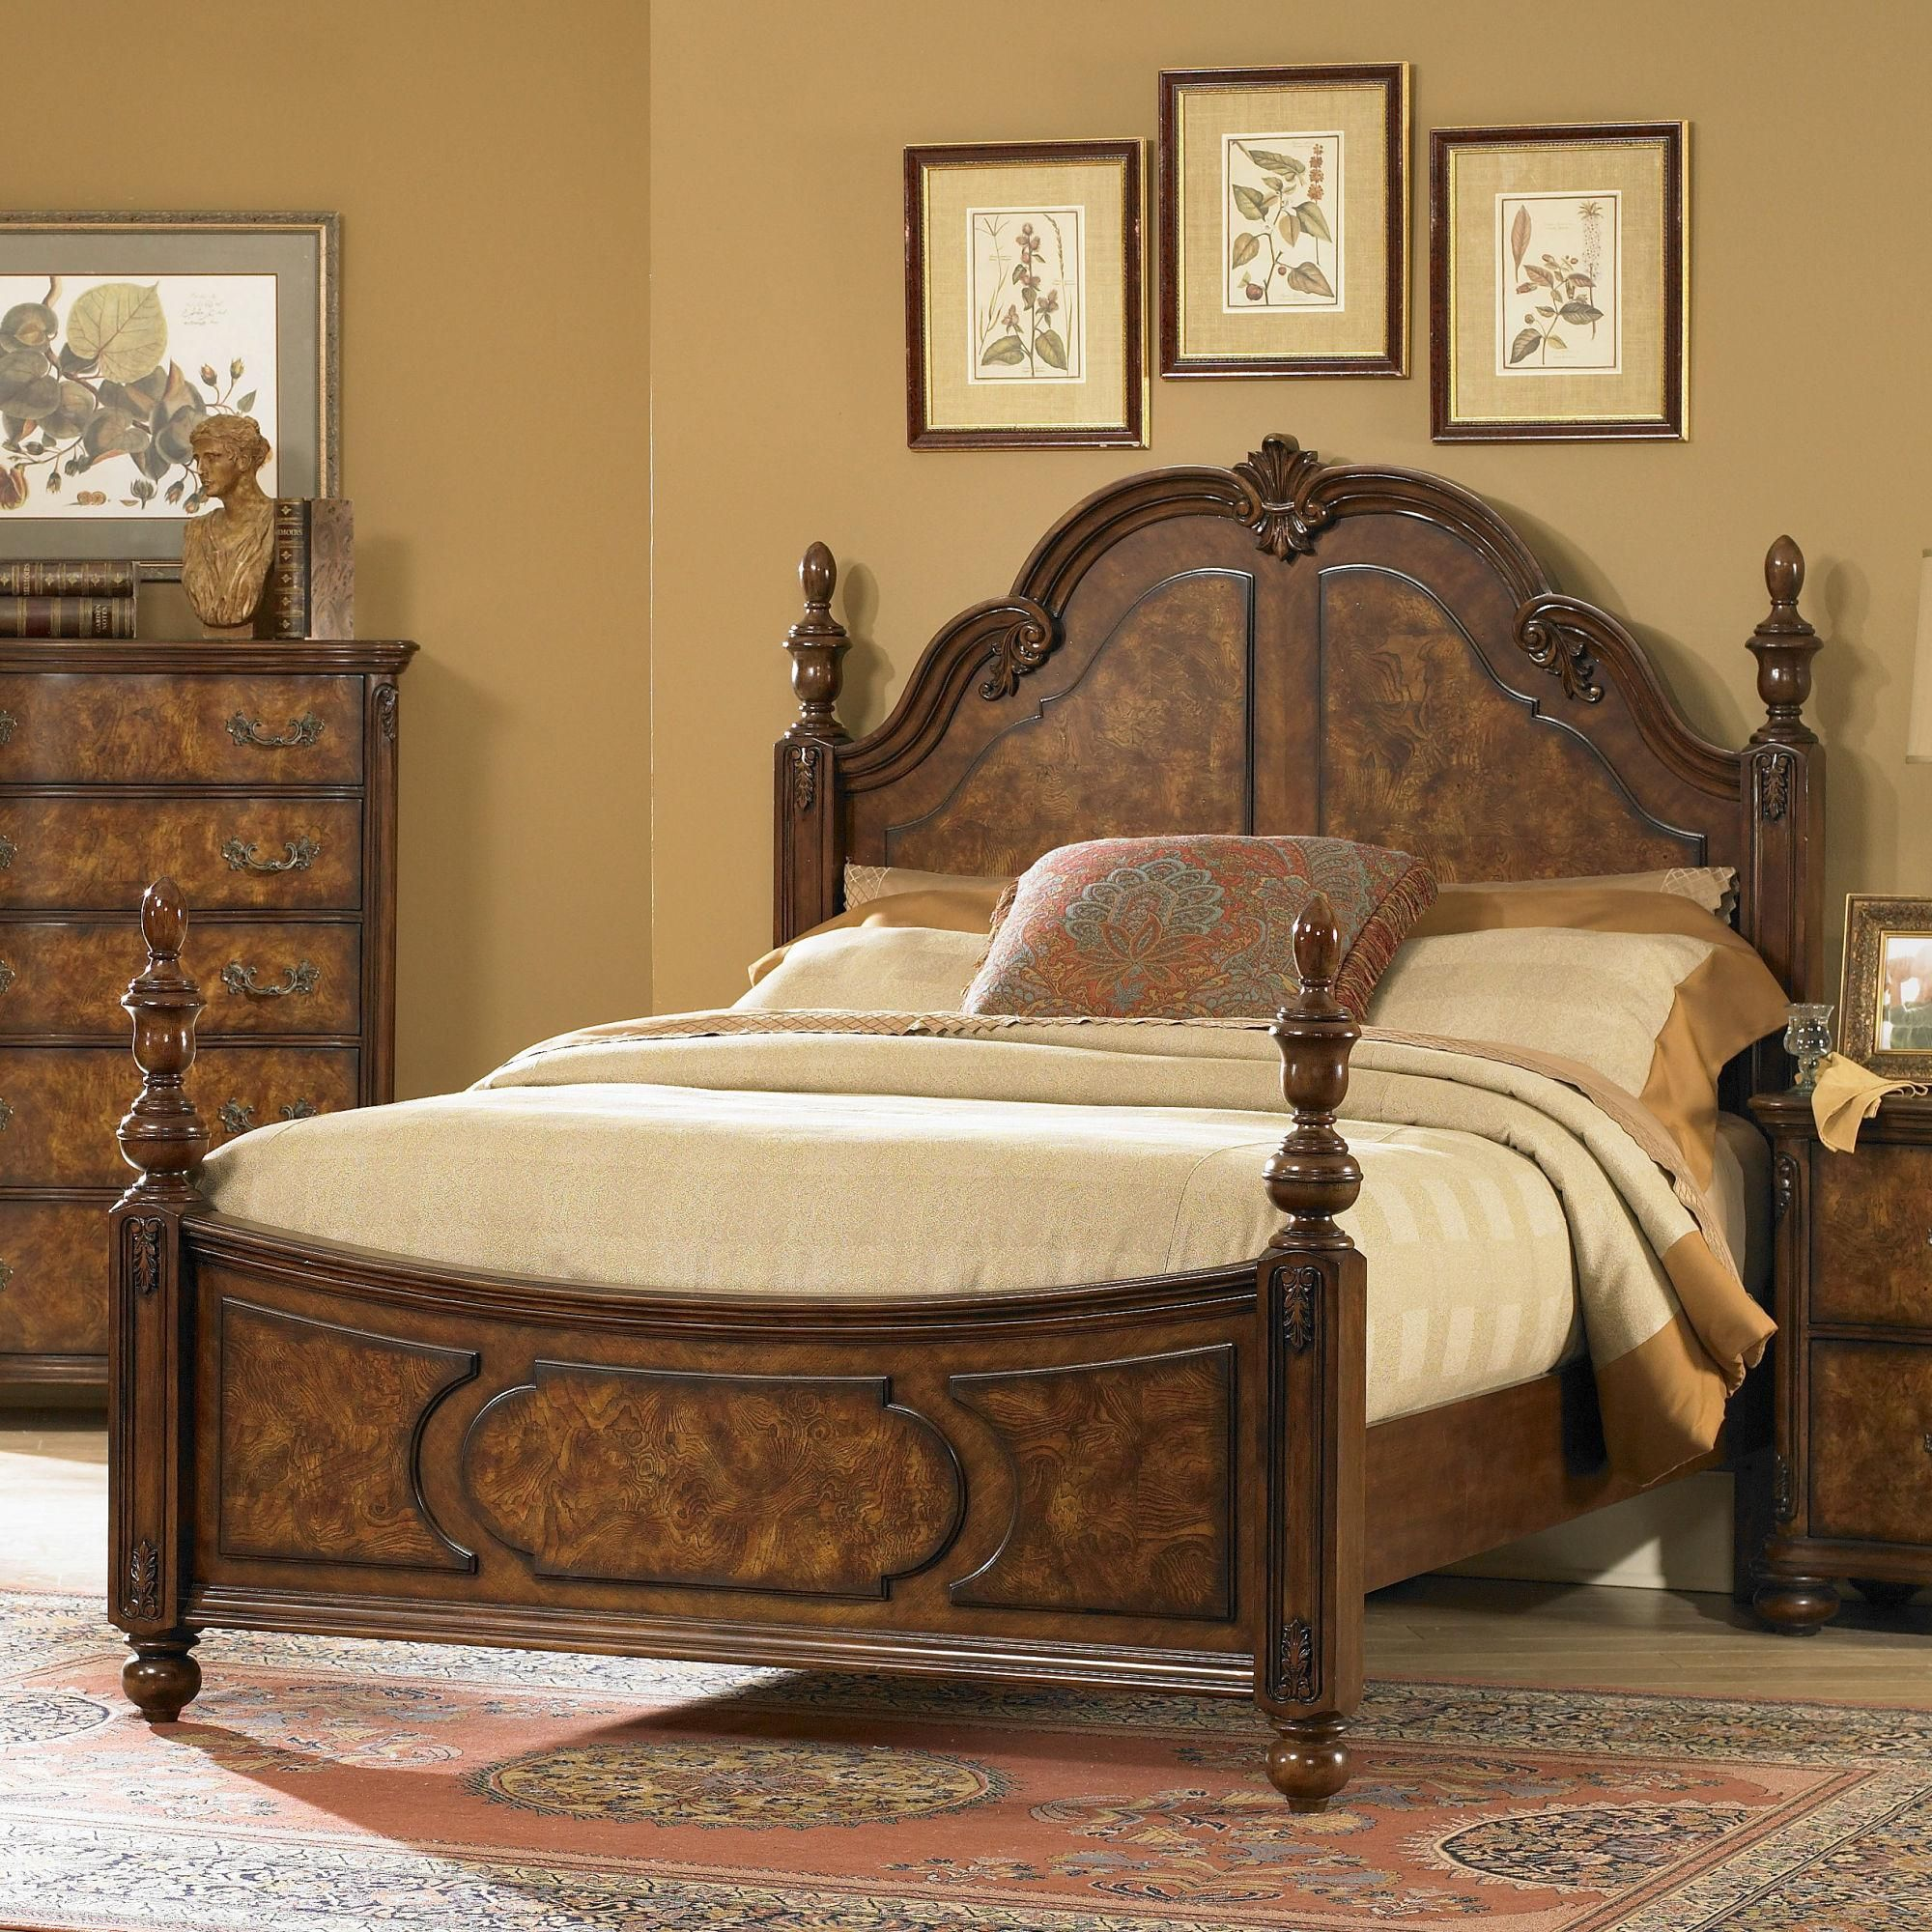 Bed Sets Transform Your Bedroom With An Elegant New Bedroom Set